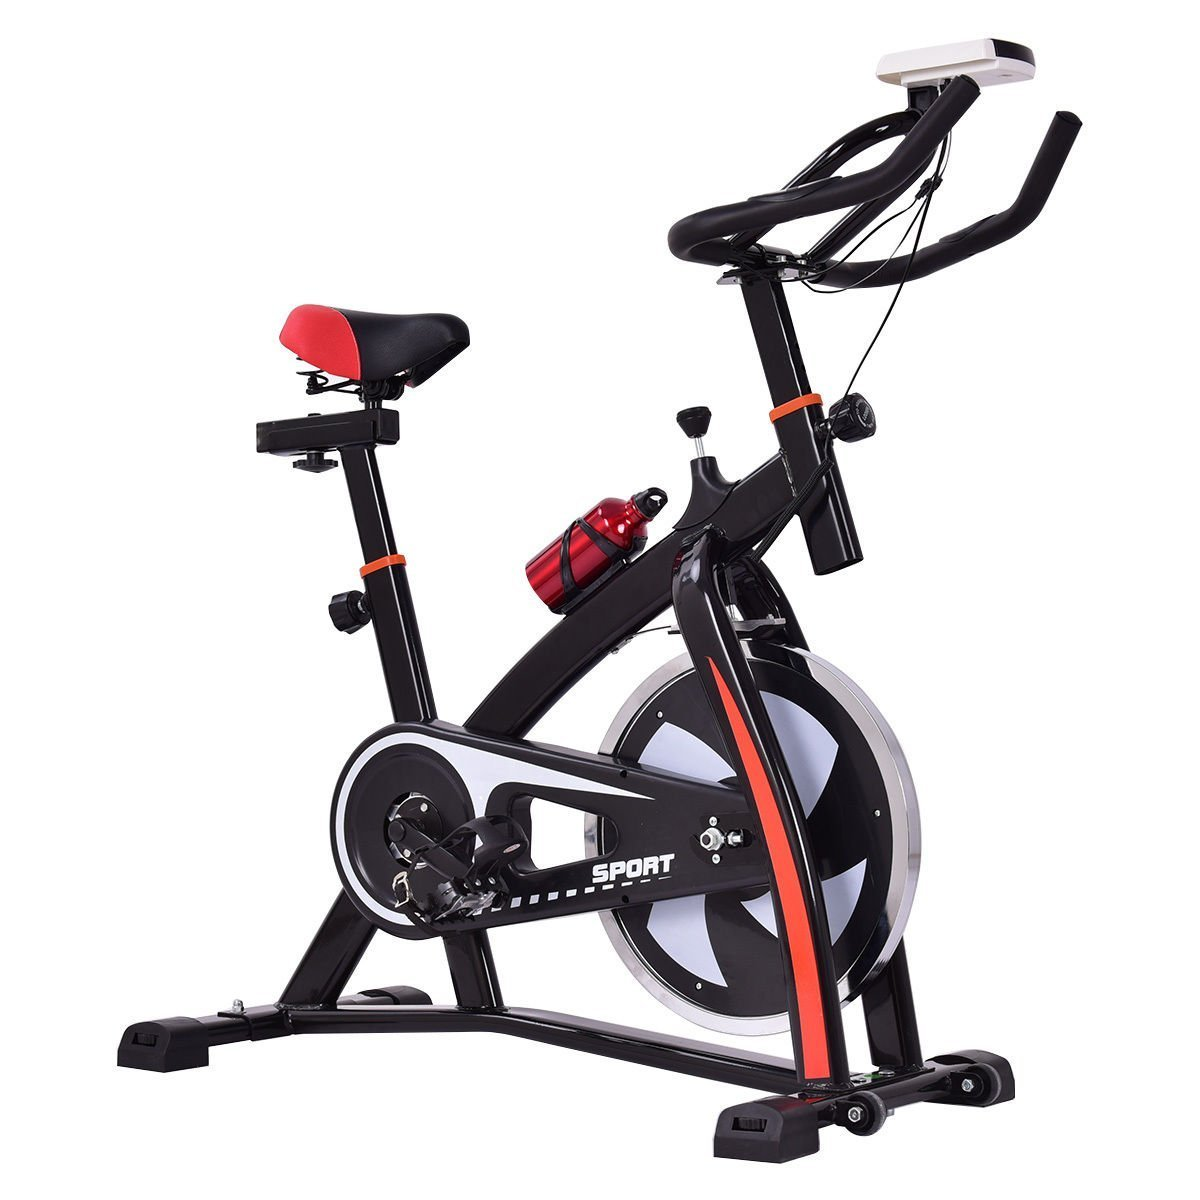 Exercise Bike Tall Person: Stationary Bikes With LCD